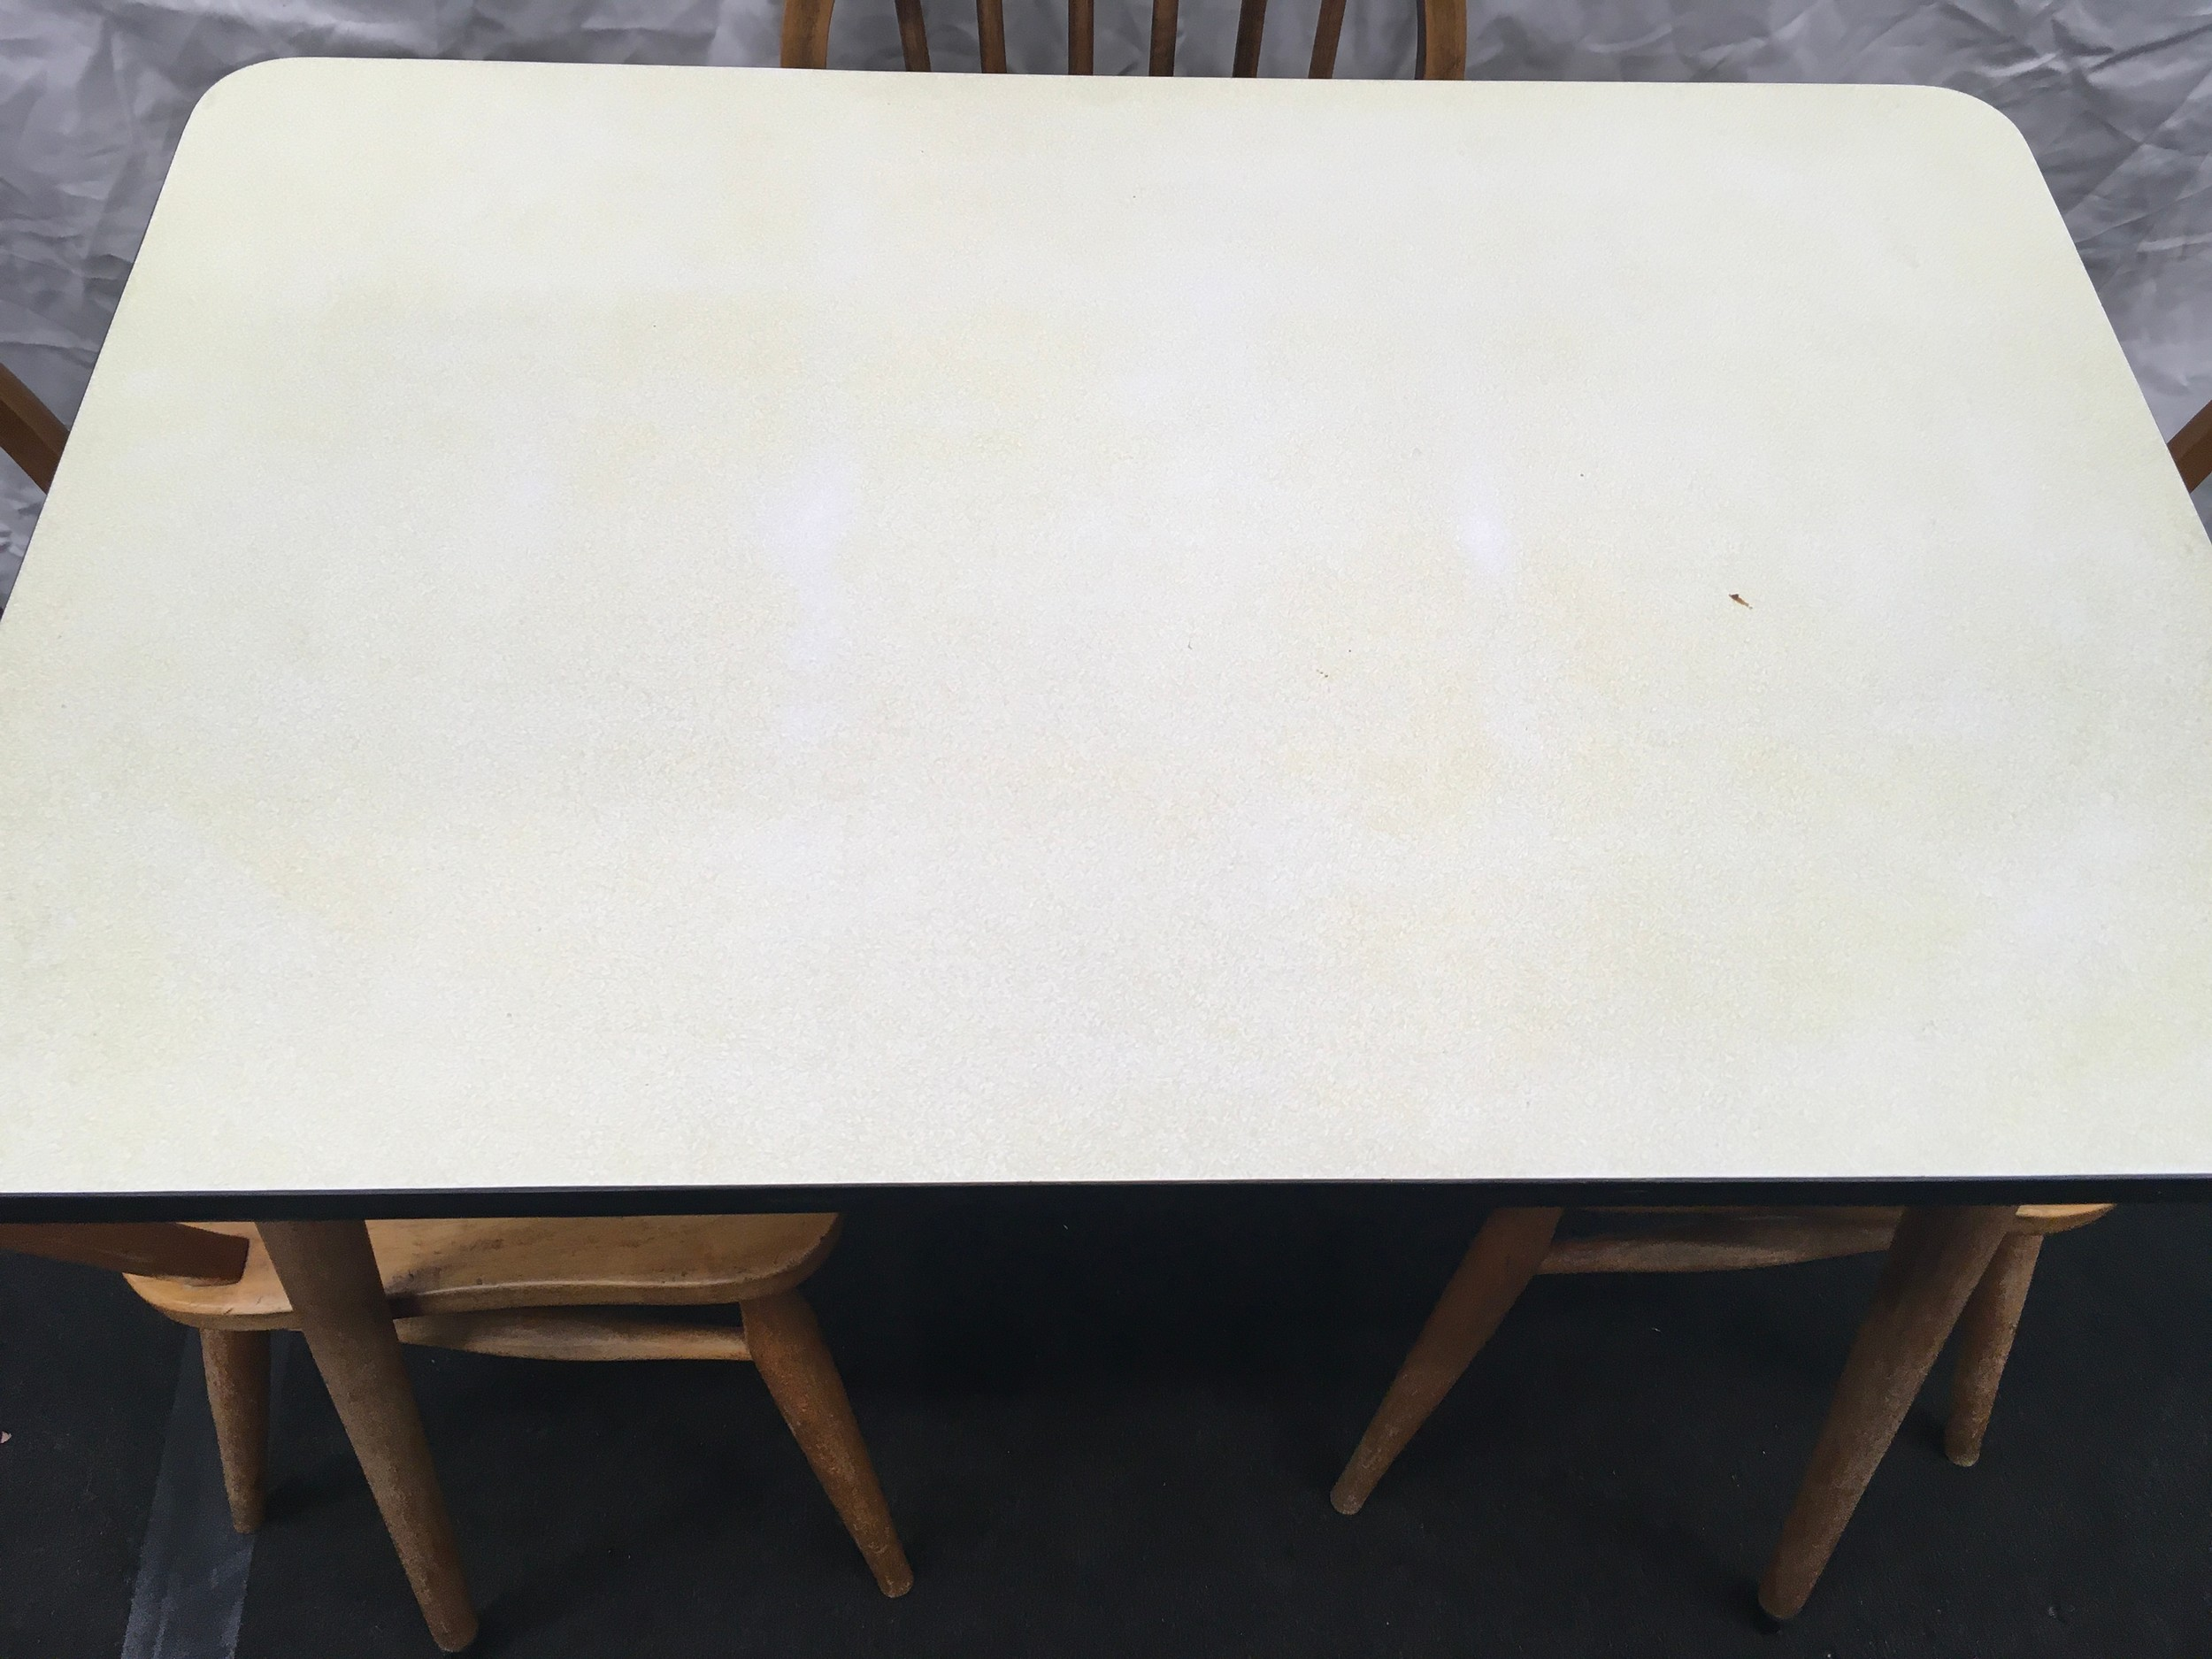 Vintage 1960's formica topped kitchen table. 91cm wide x 60cm deep x 78cm tall together with three - Image 2 of 3